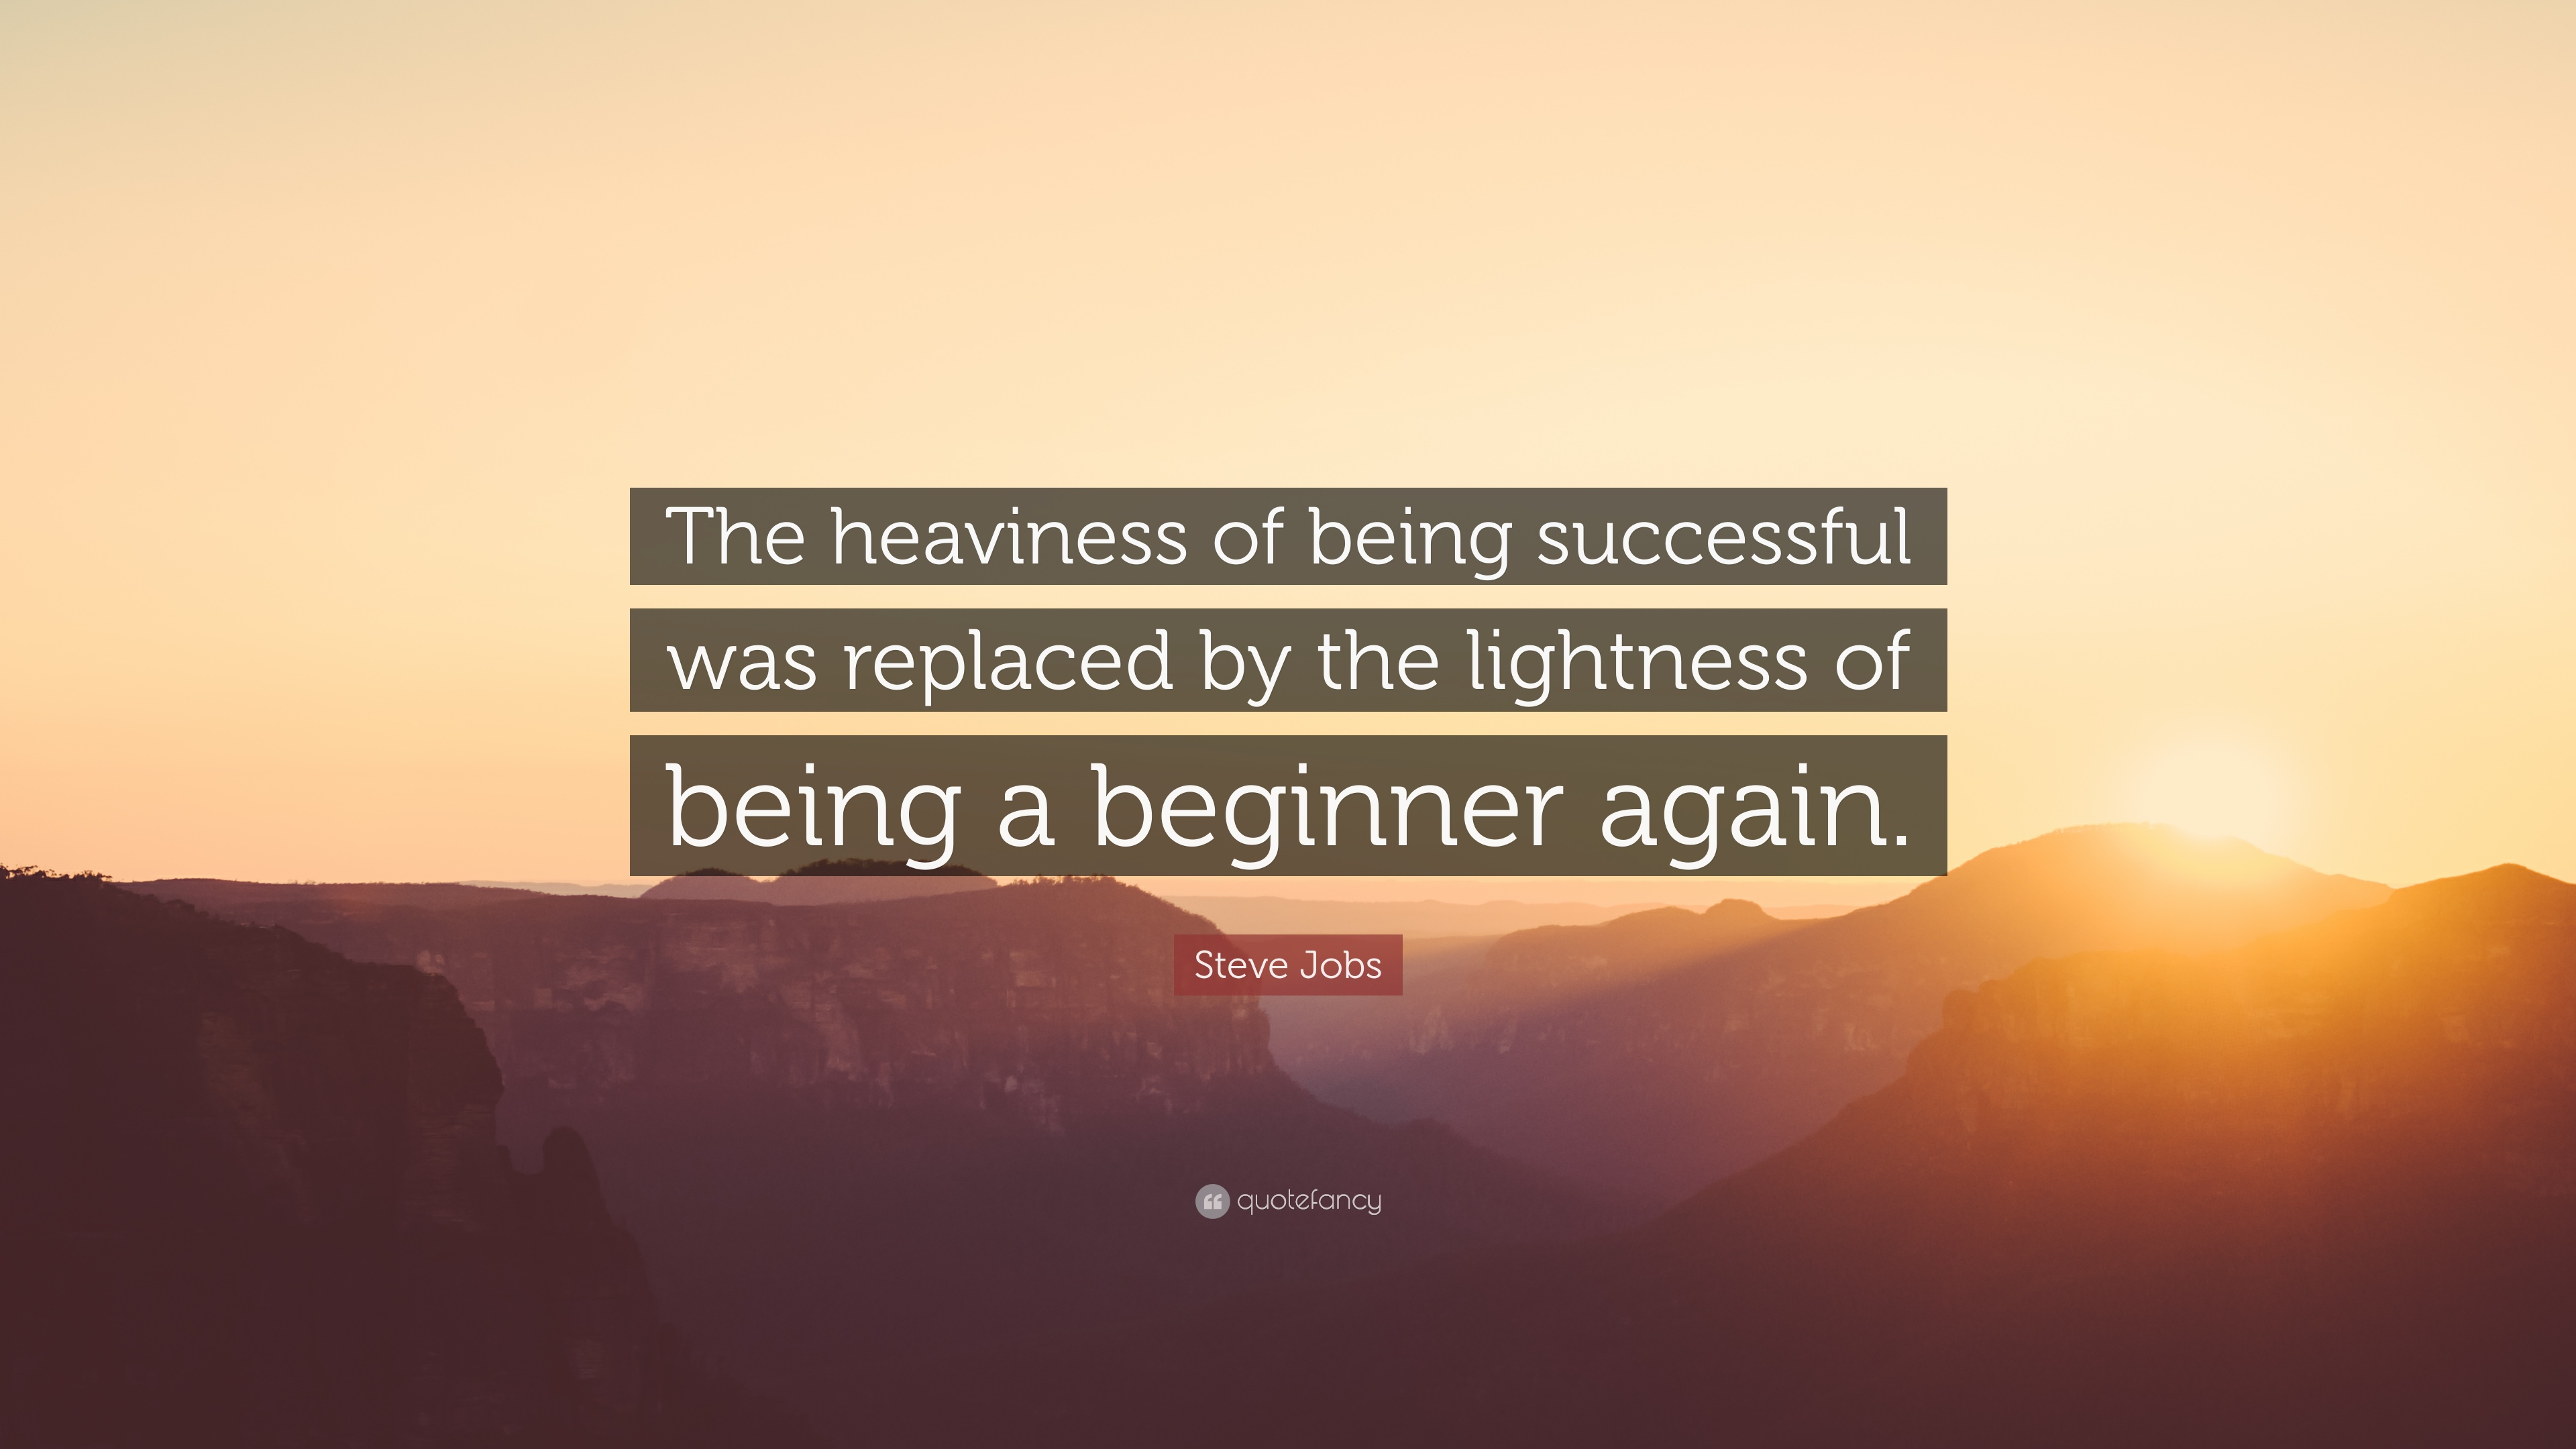 steve jobs quote the heaviness of being successful was replaced steve jobs quote the heaviness of being successful was replaced by the lightness of